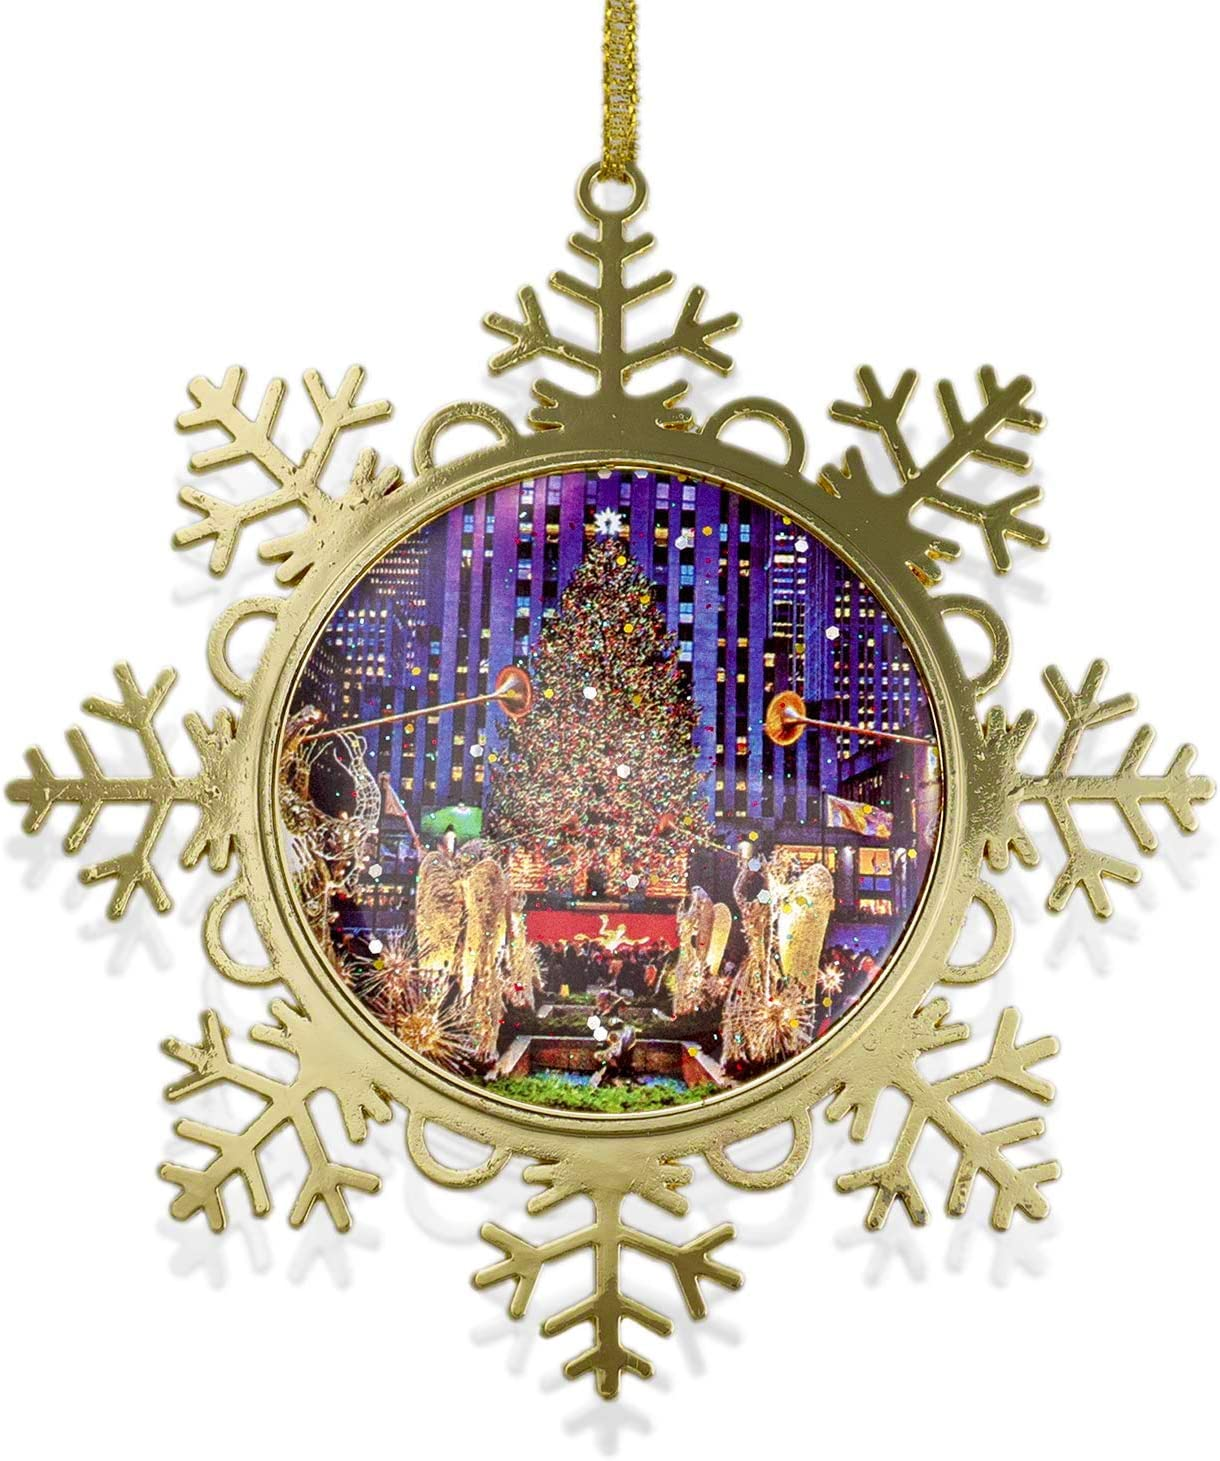 amazon com new york ornament rockefeller center christmas tree snowflake metal ornament 4 inch w gold gift box christmas in nyc collection kitchen dining amazon com